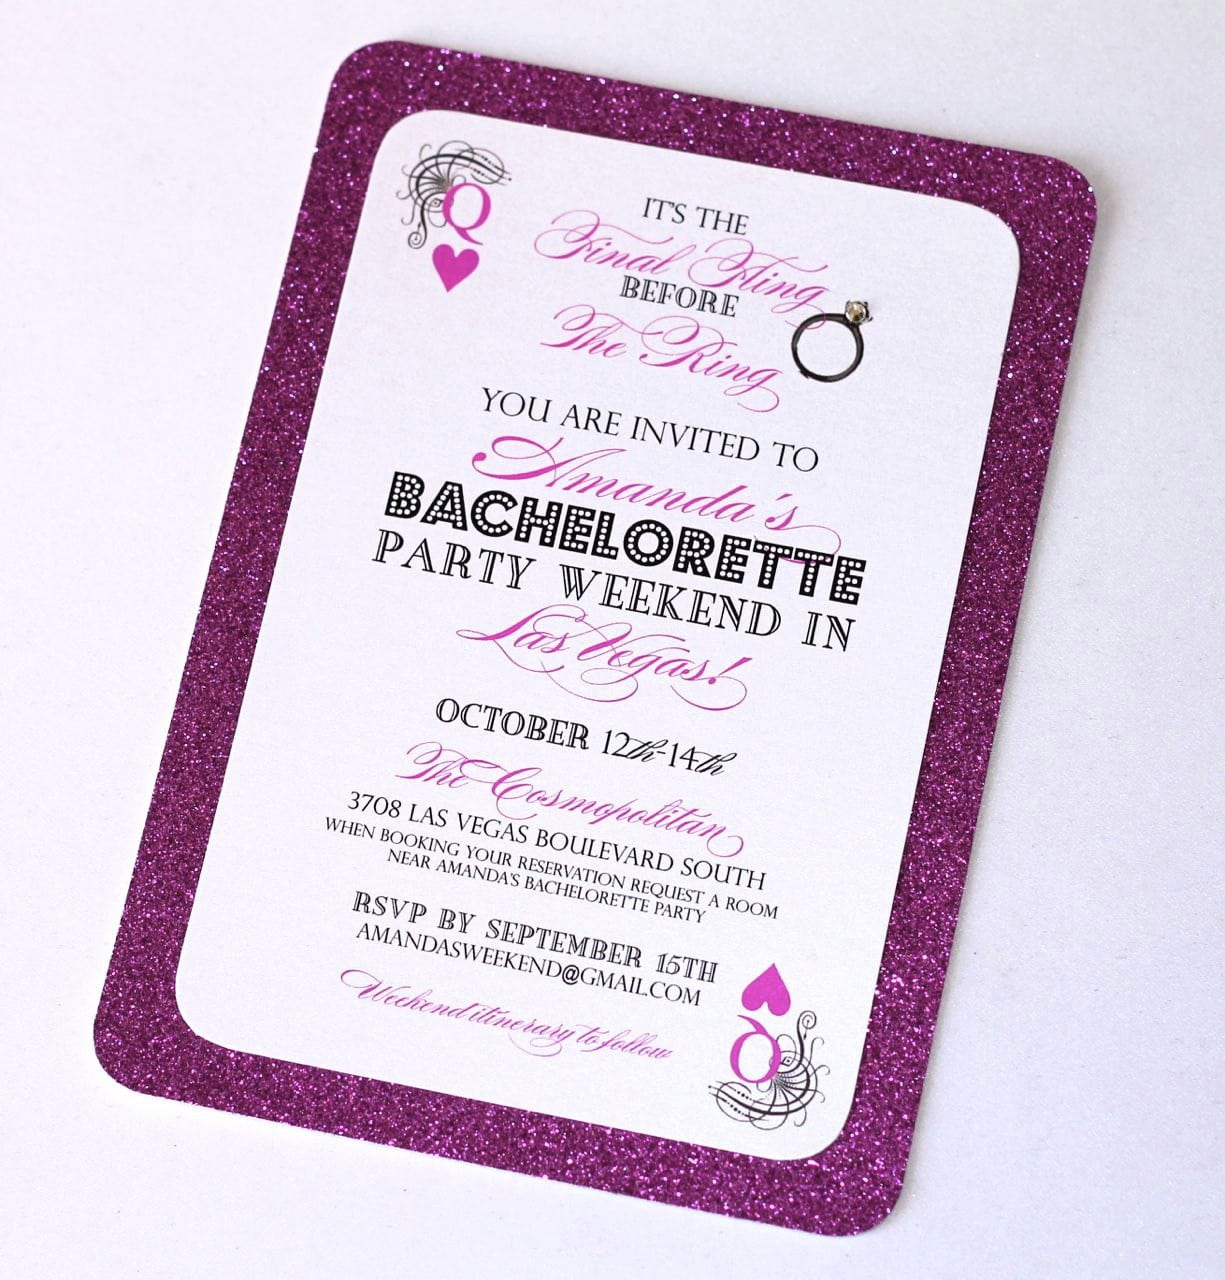 Quotes For Bachelorette Party Invitations  Quotesgram